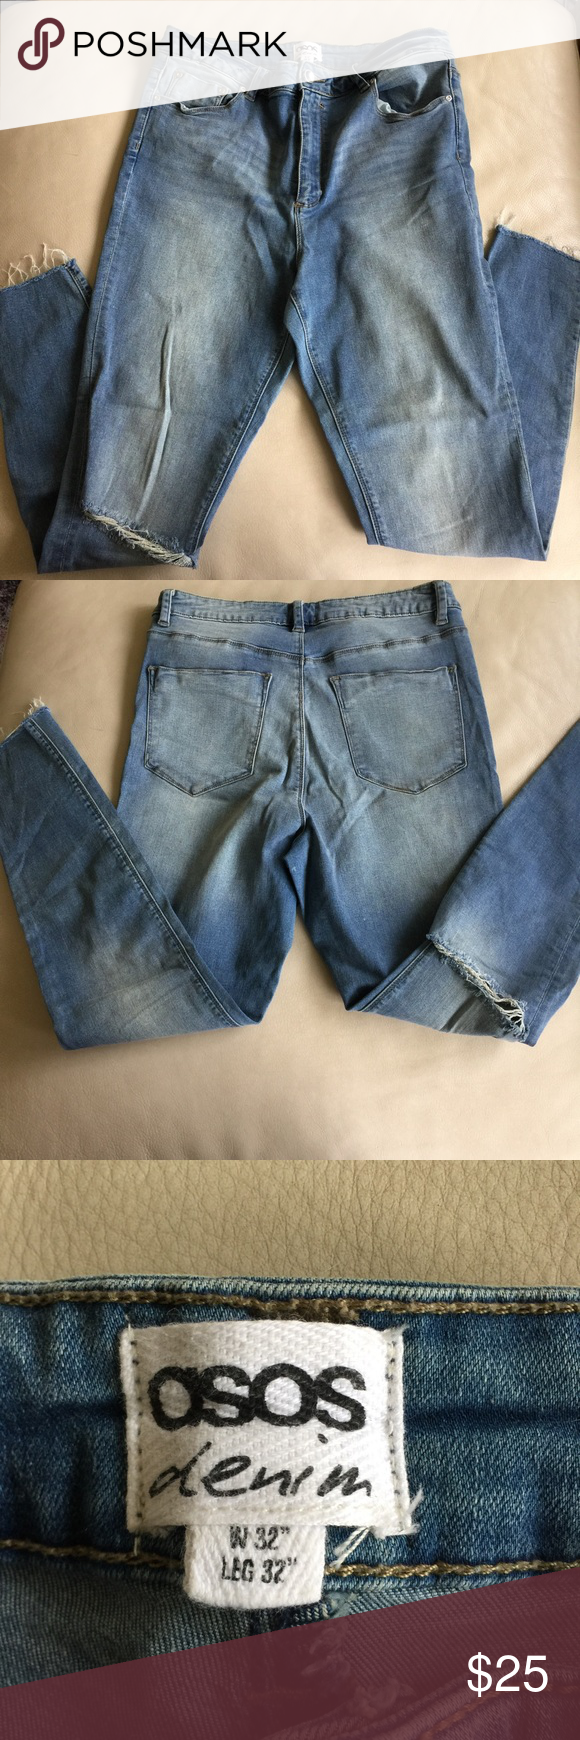 "ASOS Distressed Skinny Jeans size 32 or 14 ASOS Distressed Skinny Jeans in size 32 or size 14. High rise. Torn at one knee and unfinished at bottoms. Inseam = approx. 29"" ( tag says 32"" but I measured them myself) Rise = approx. 12"" Super cute! ASOS Jeans Skinny"